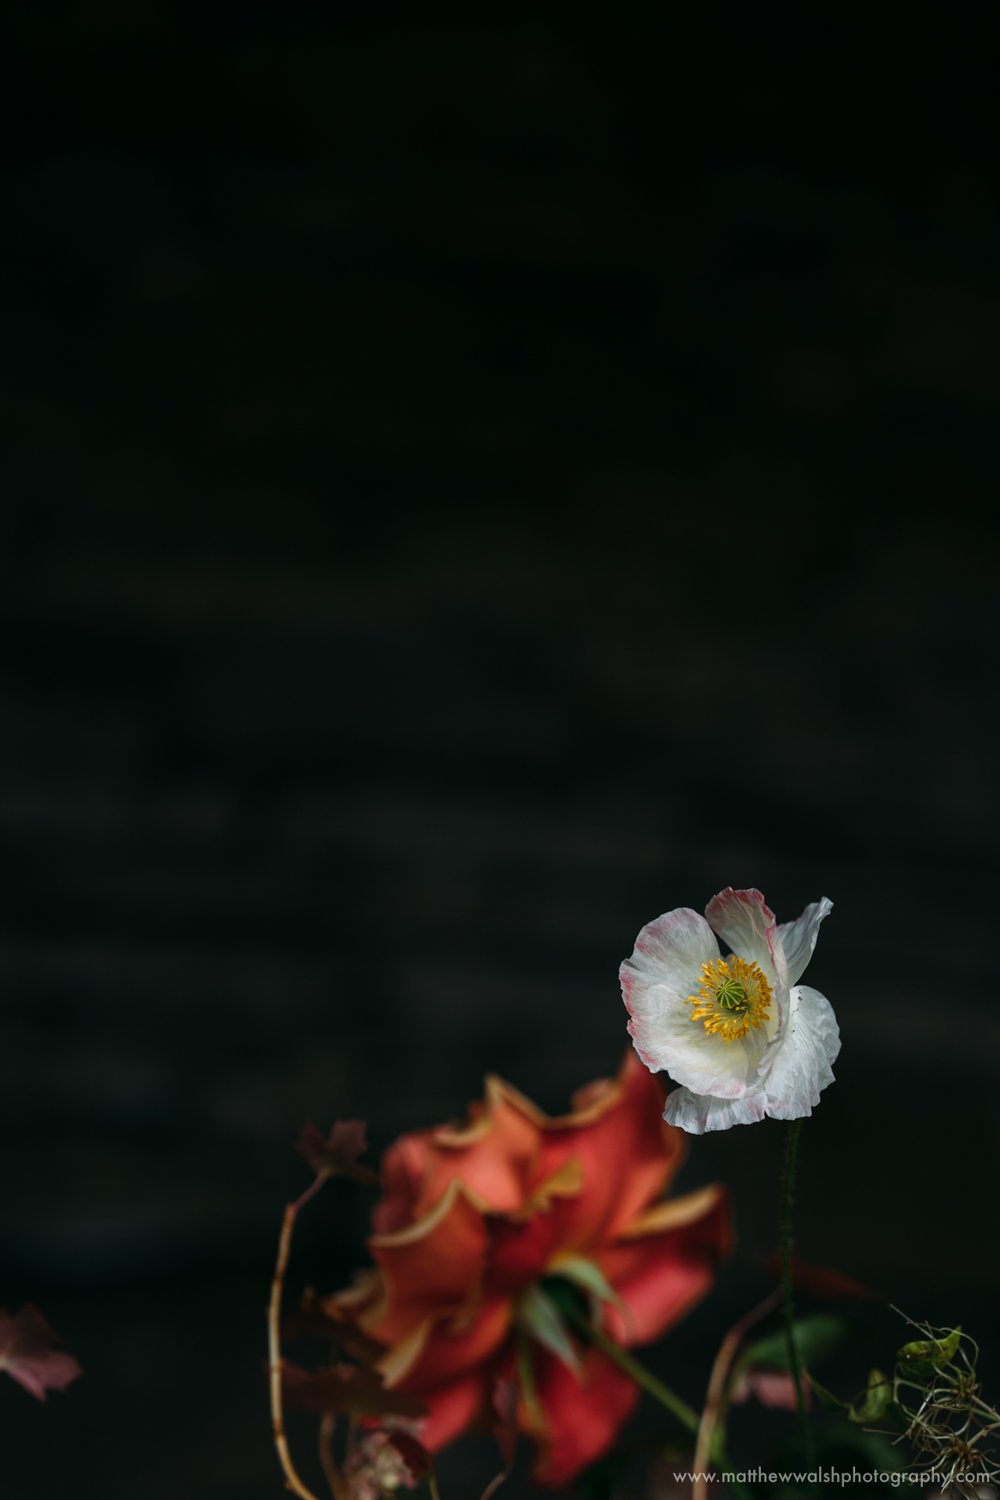 A delicate flower against a hard dark backdrop